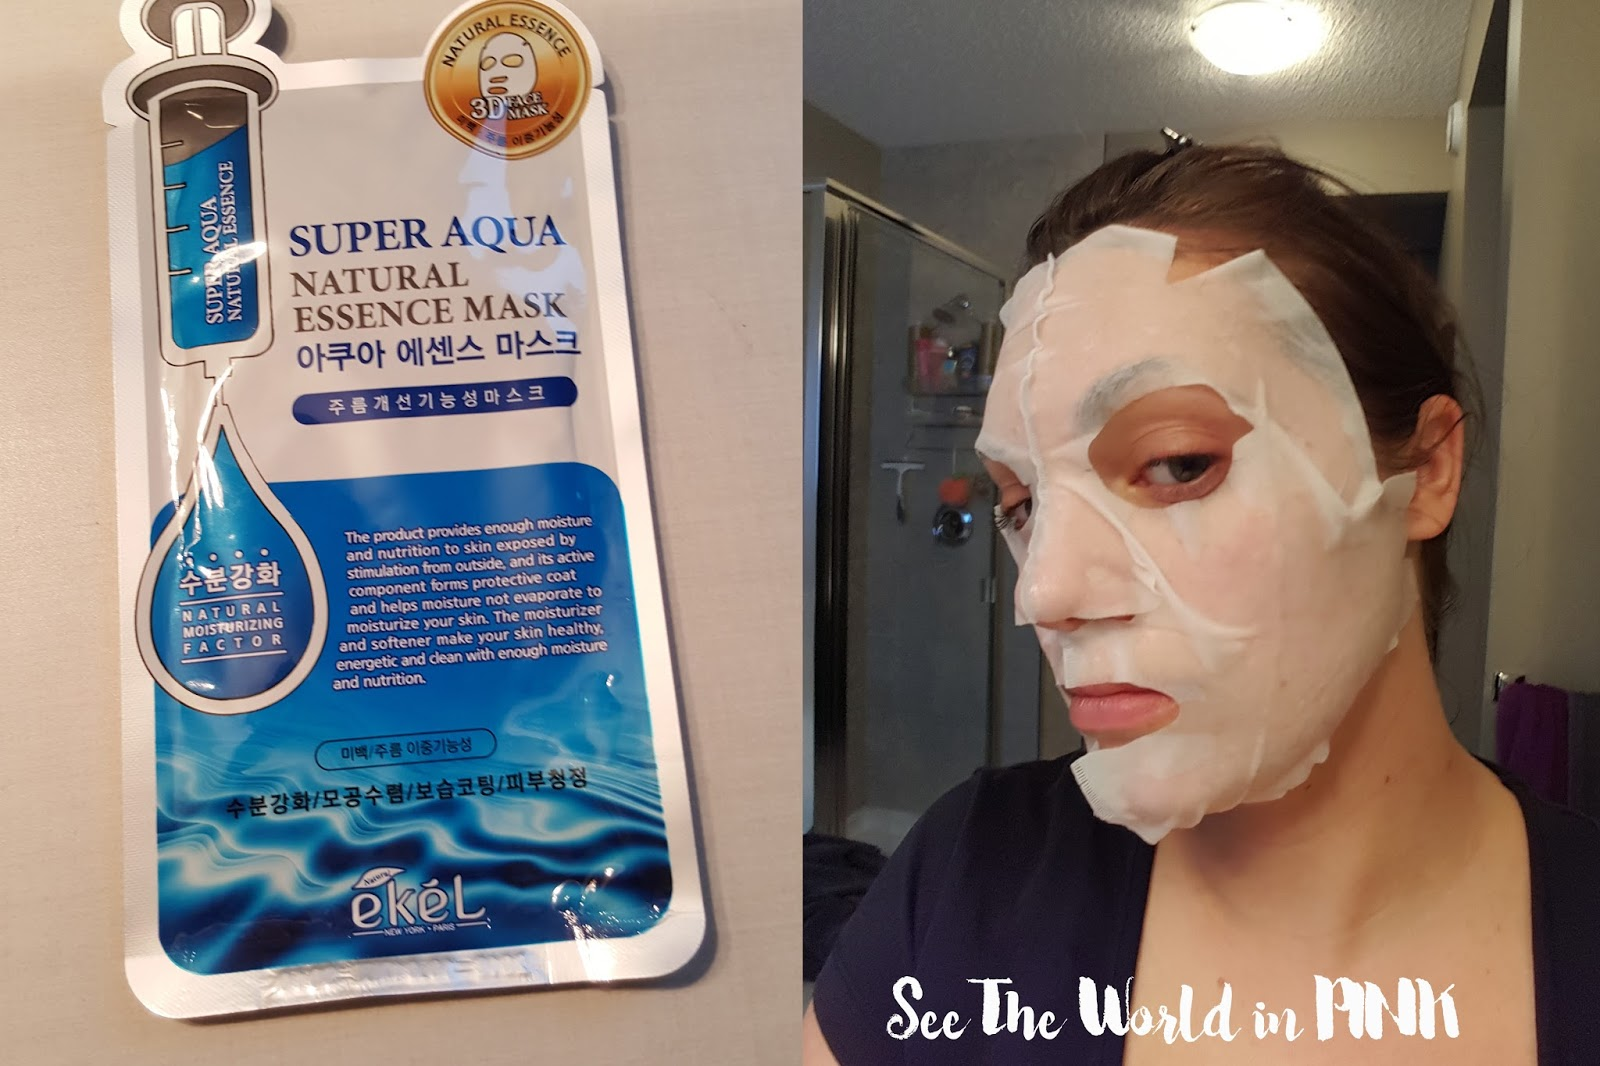 Ekel Super Aqua Natural Essence Mask